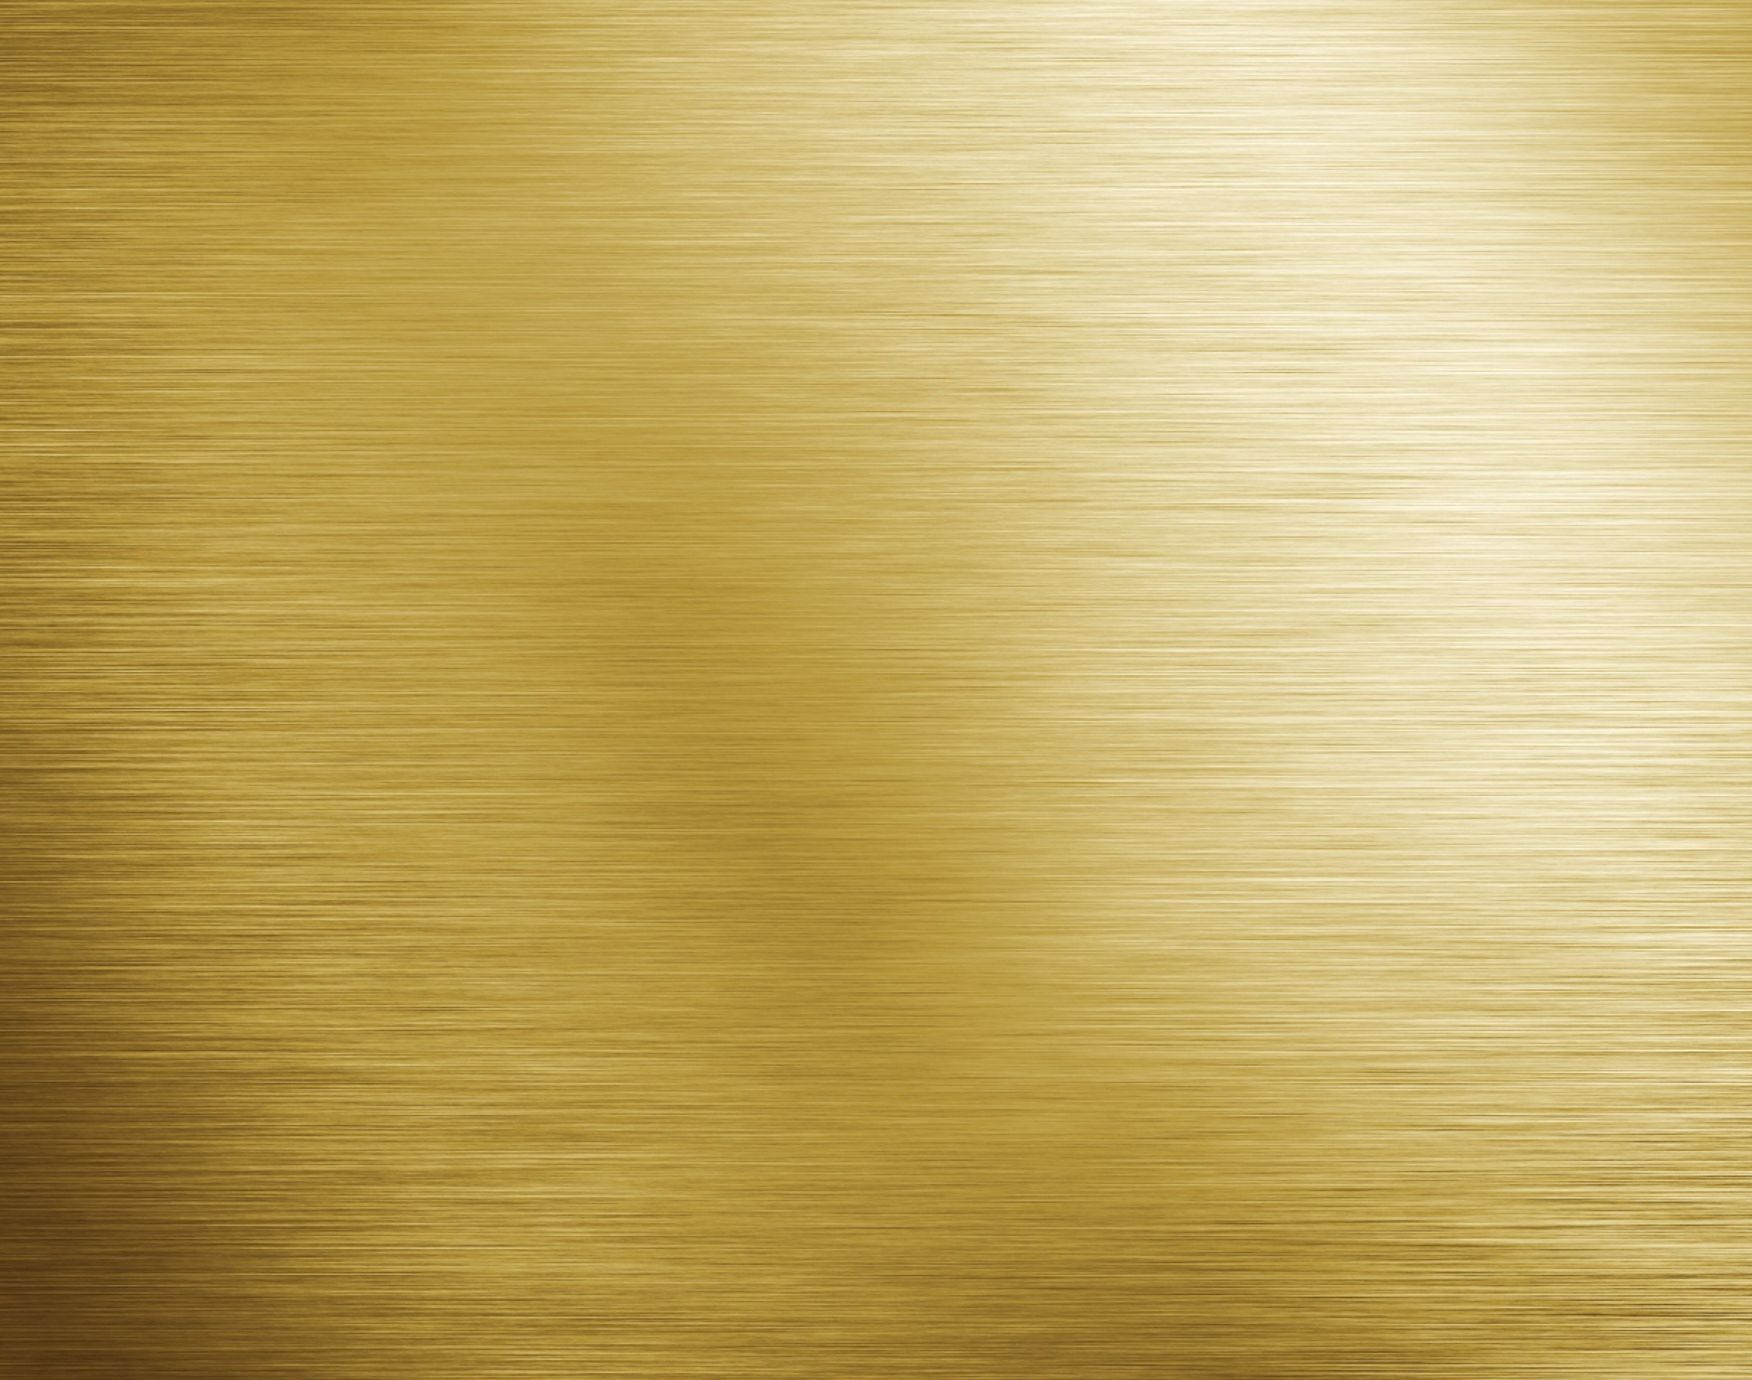 Sparkle Backgrounds additionally Yellow Glitter Background additionally Seamless Gold Heart Pattern 3 besides Gold Metal Texture Wallpaper 3 further Golden Texture. on shiny gold background wallpaper